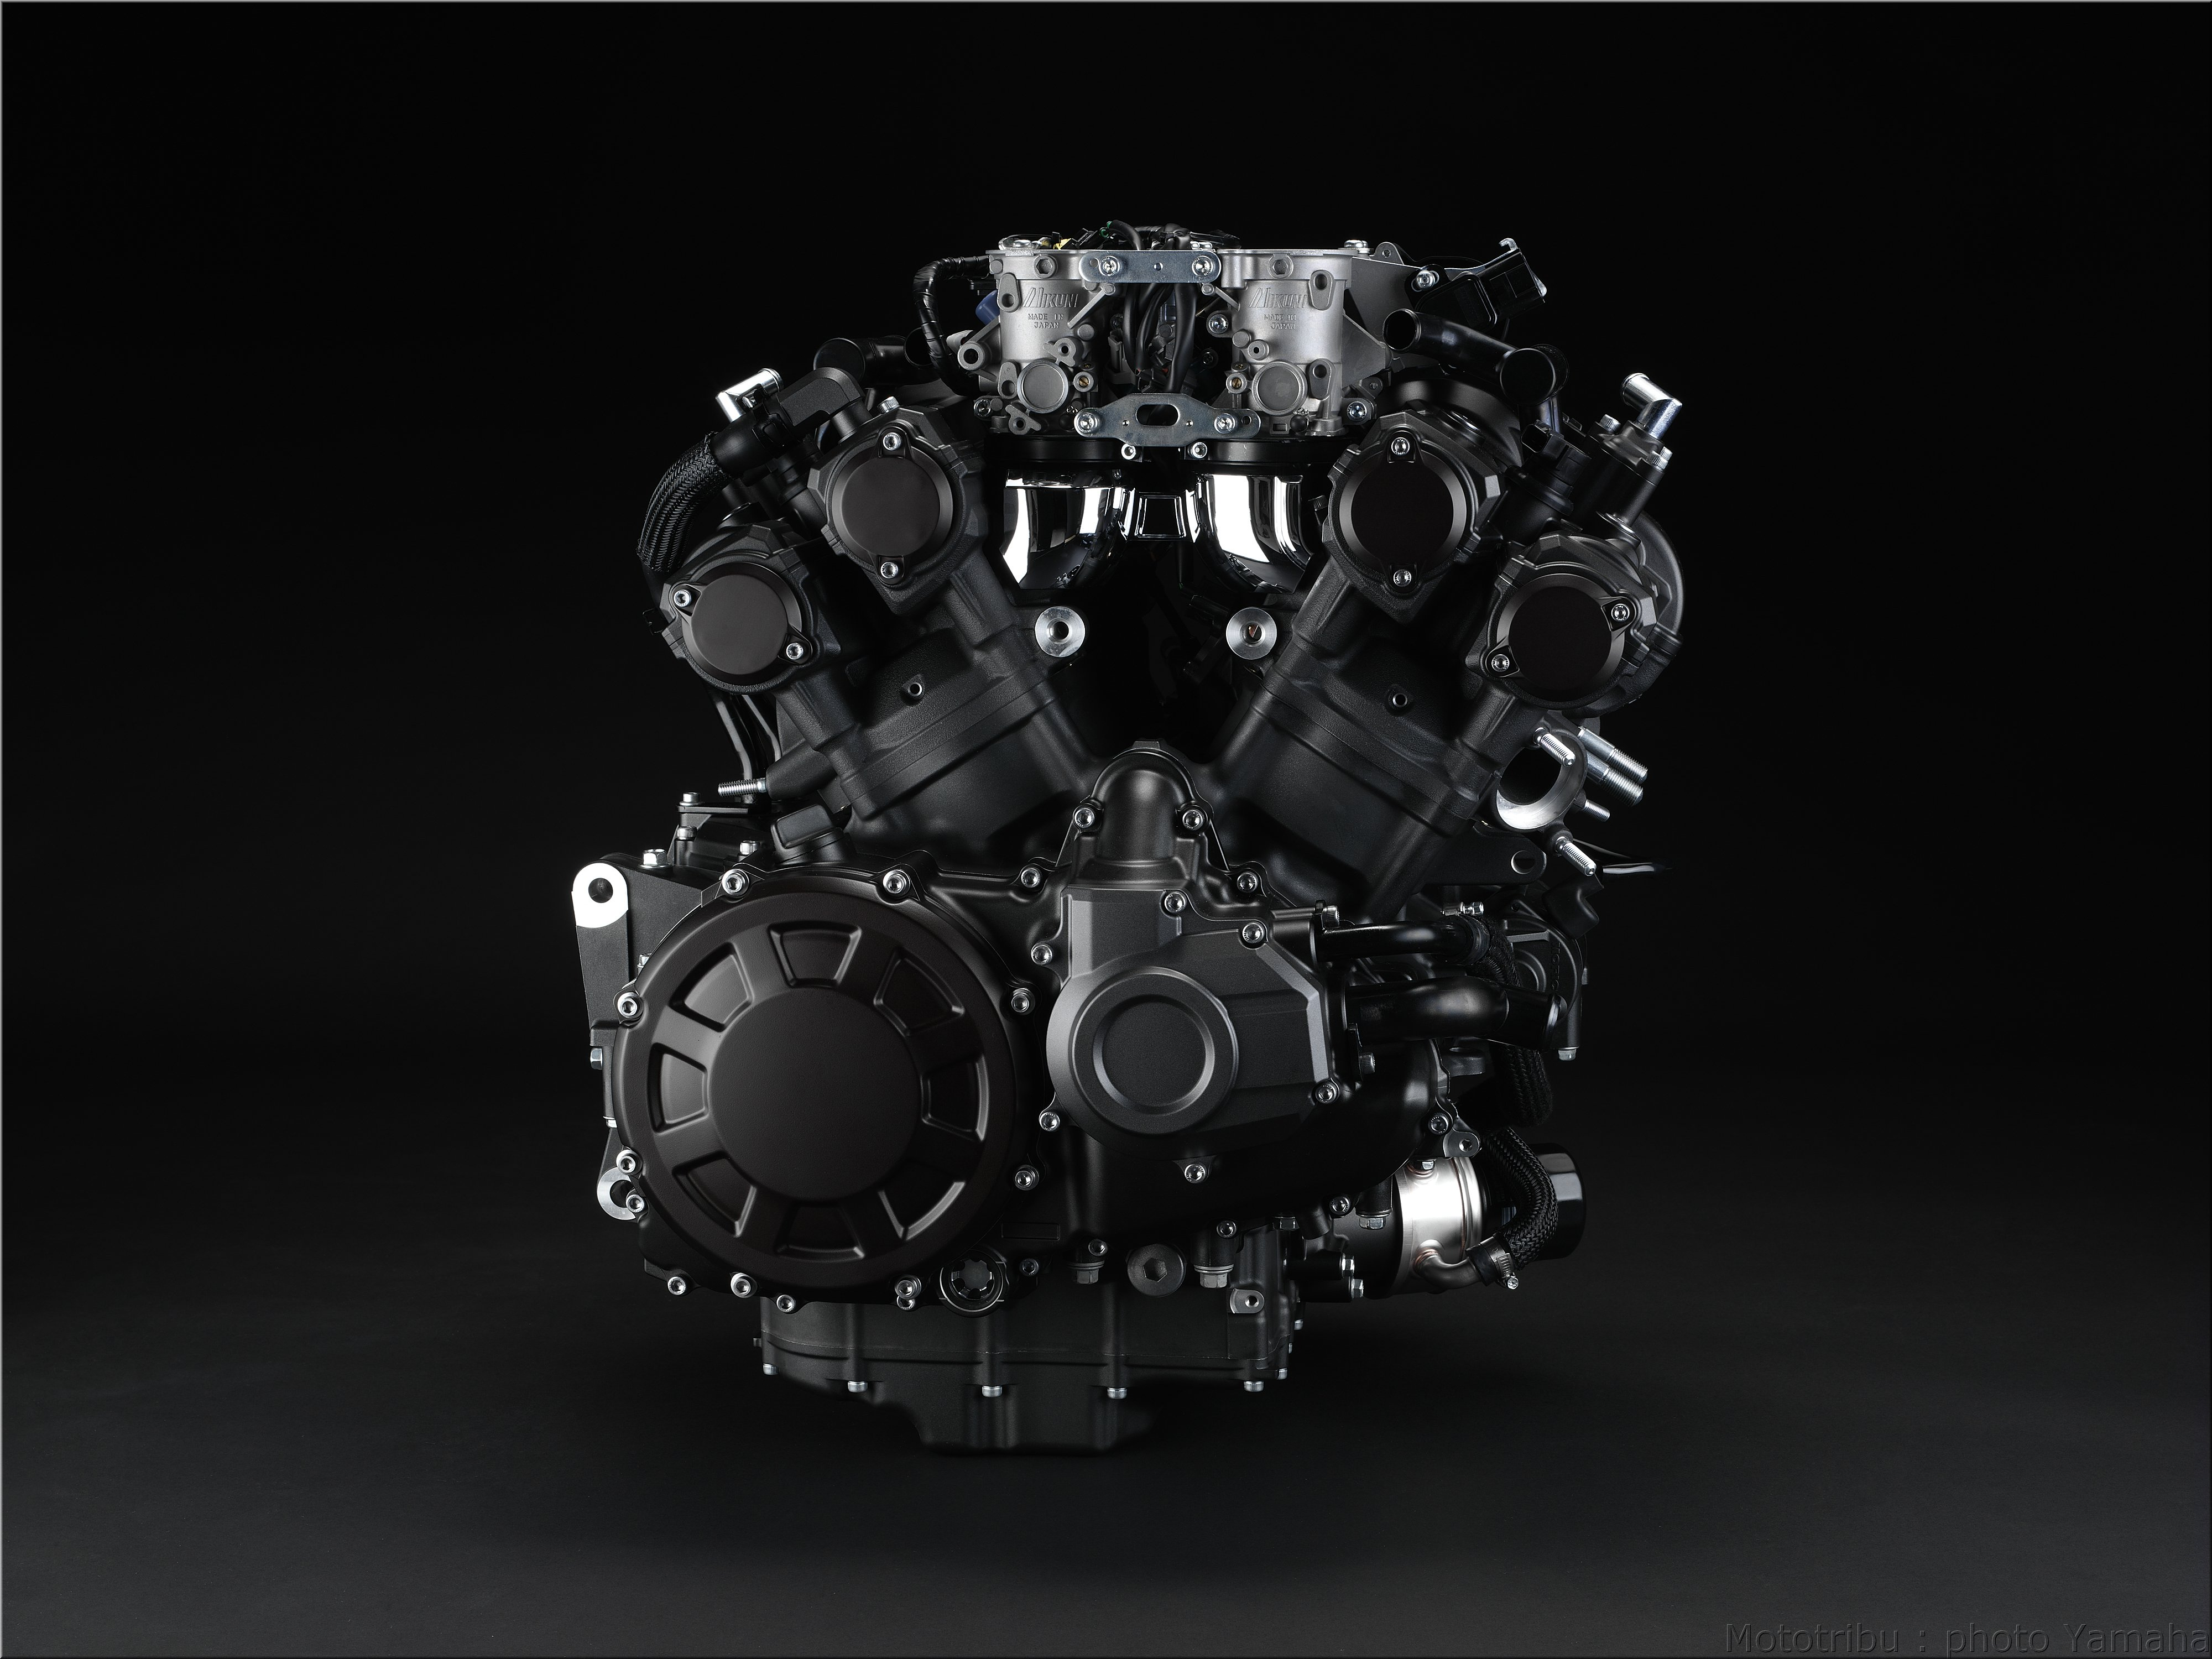 Yamaha Star V Max Forum Topic Vmax Engine Weight Dimensions 2 4 Diagram 11 Pics And Io The New